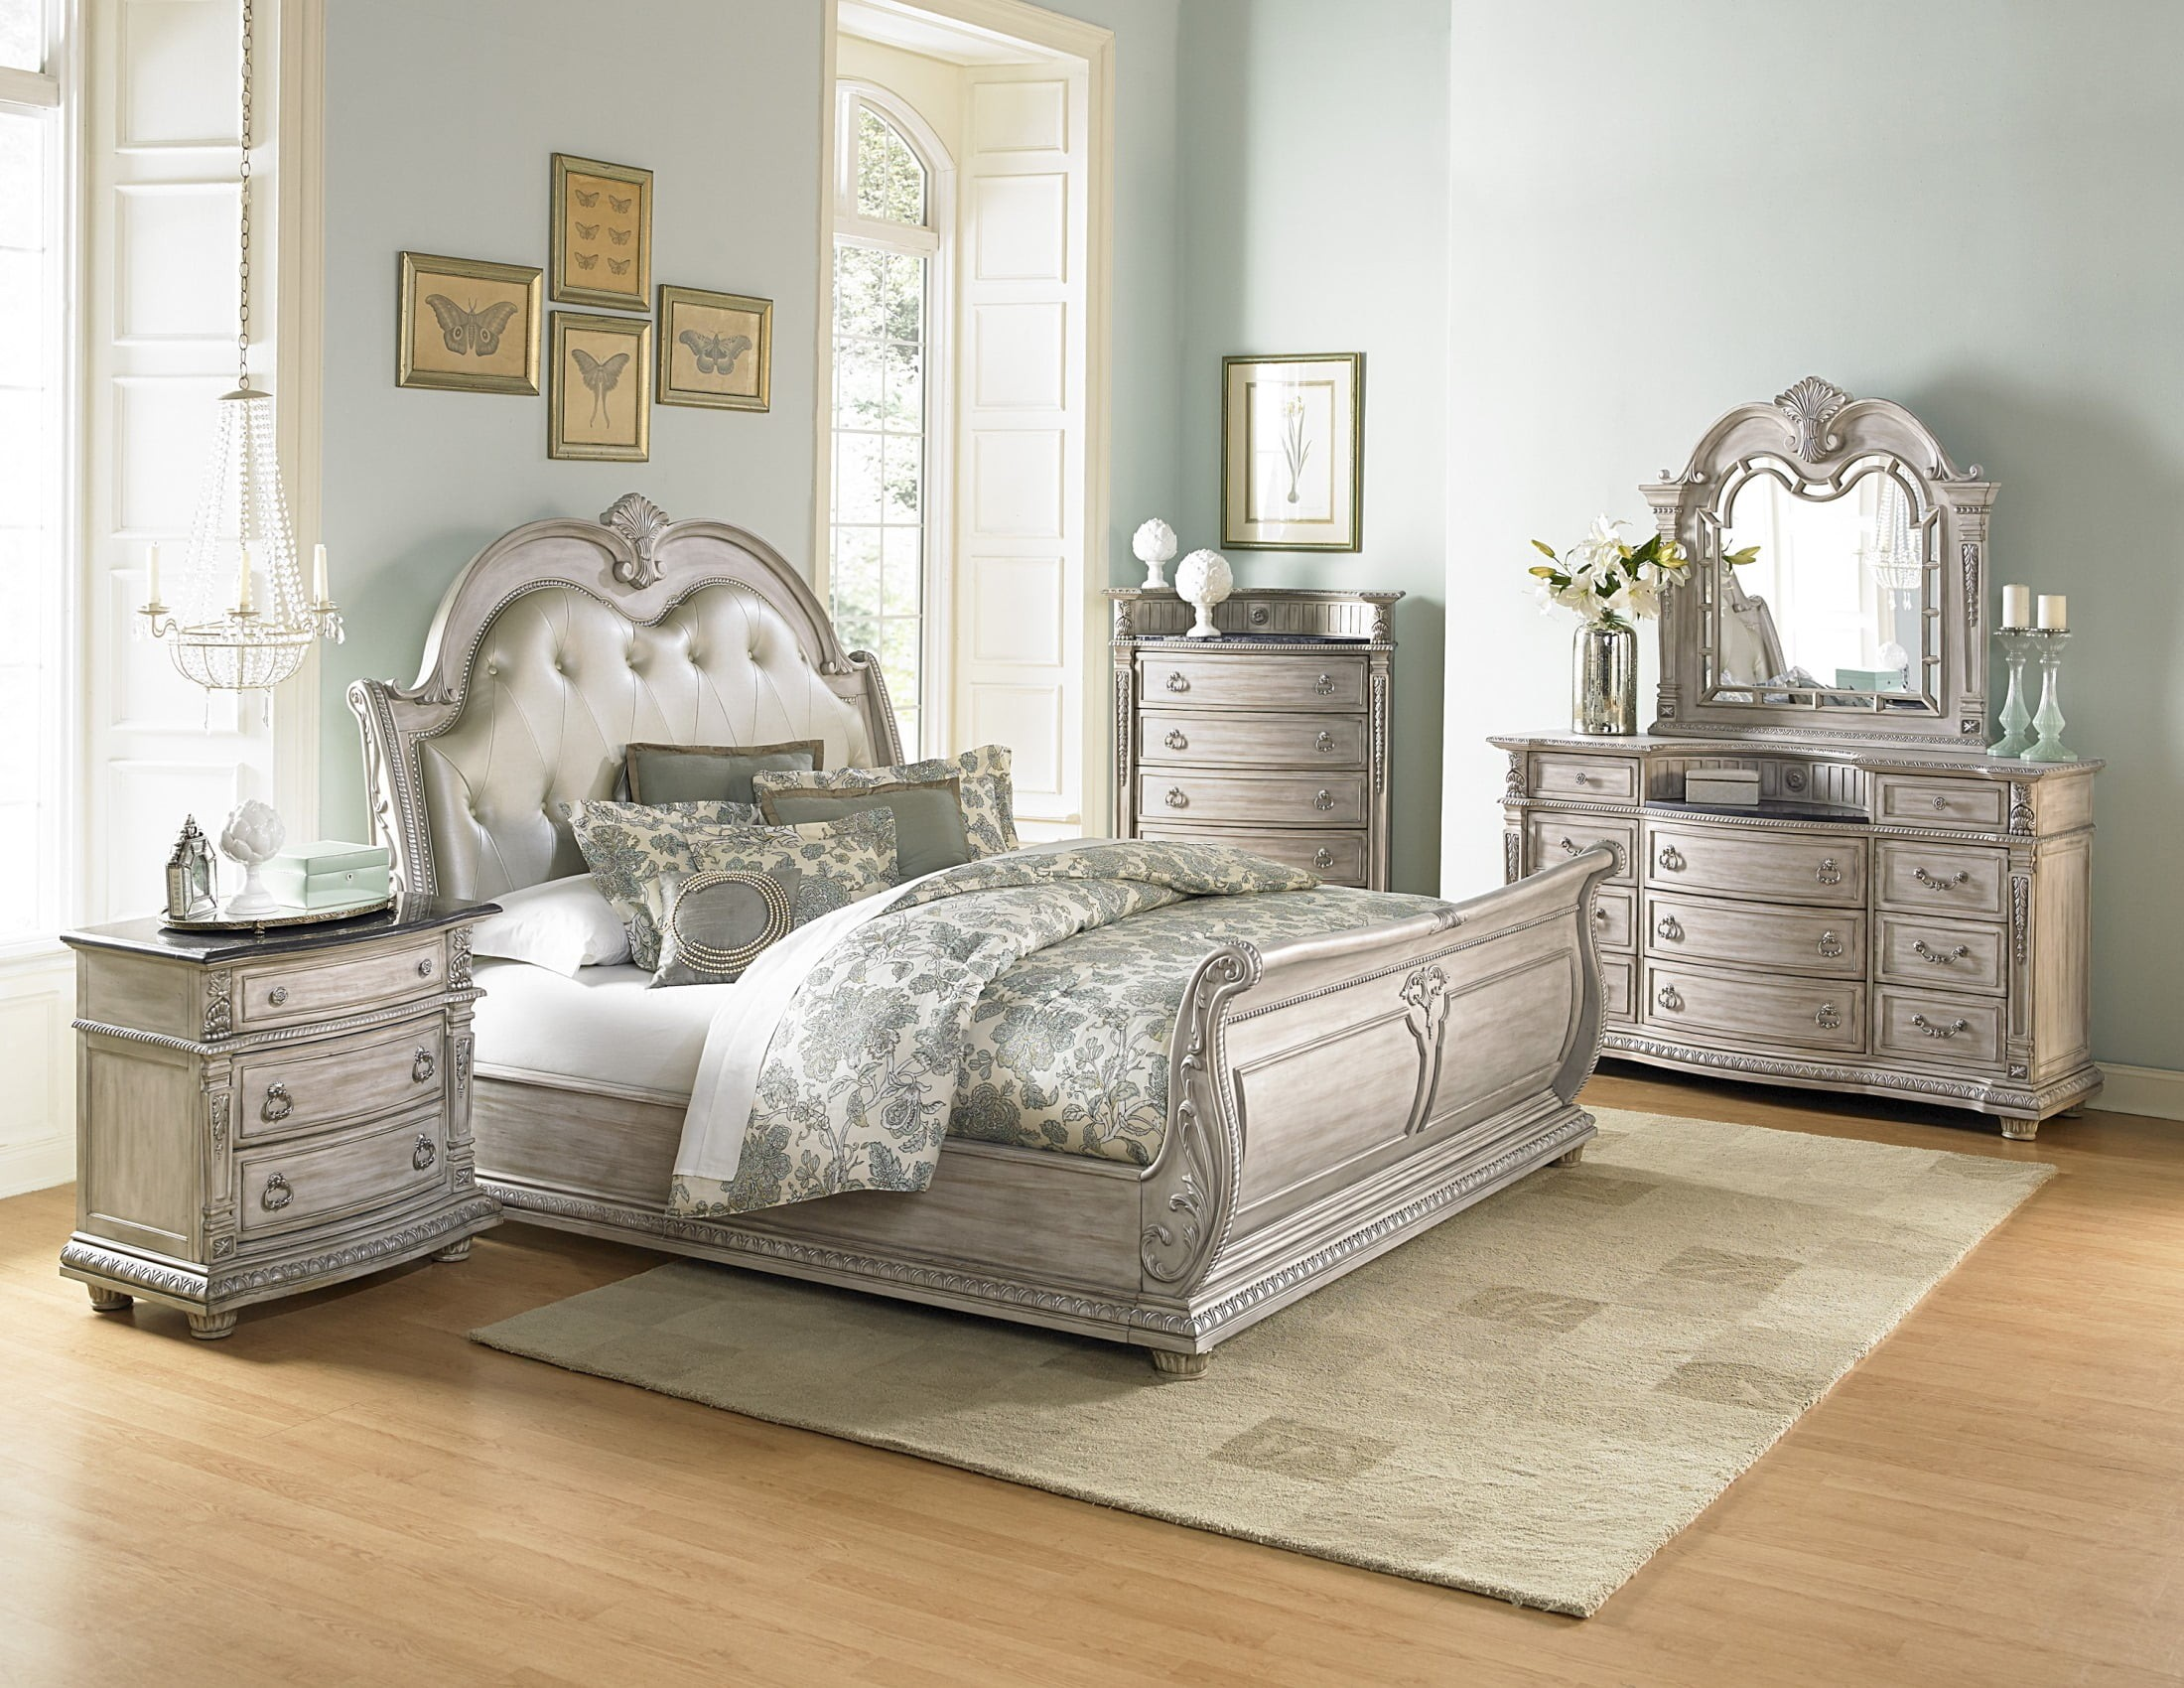 palace ii white wash bonded leather sleigh bedroom set 17846 | 1394n 1 1 1 1